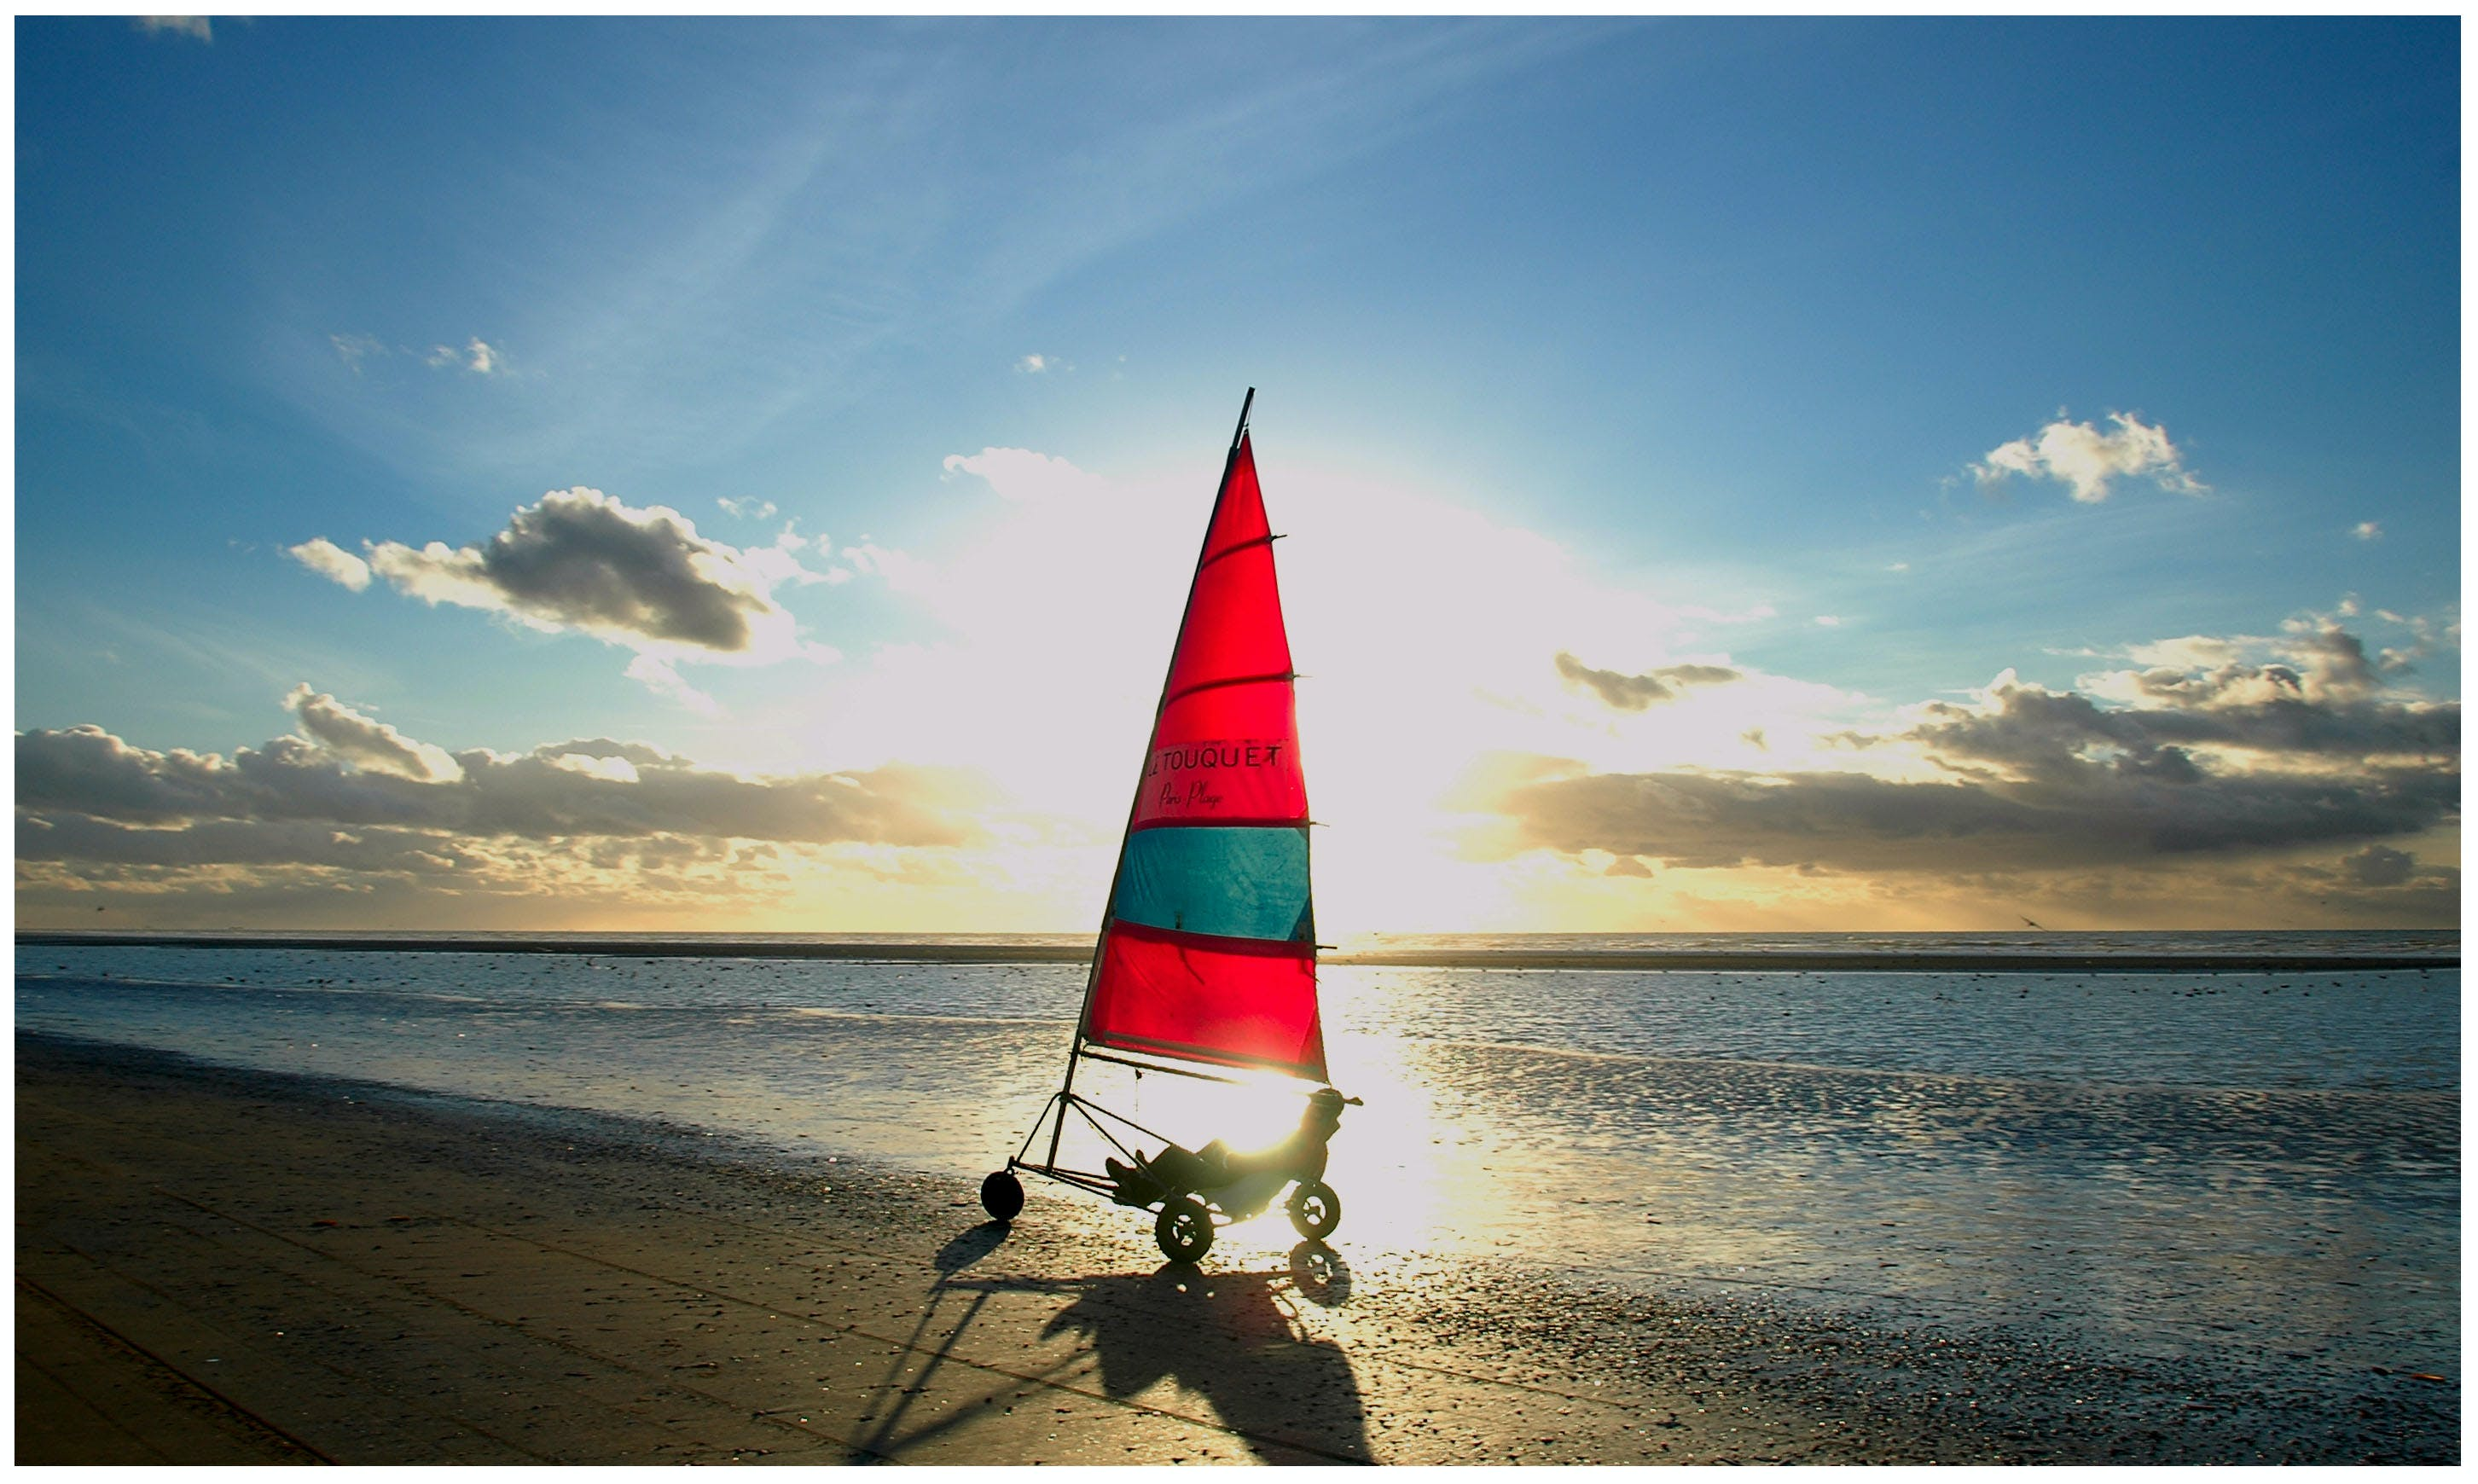 Man Riding Sailboat on Beach Sand